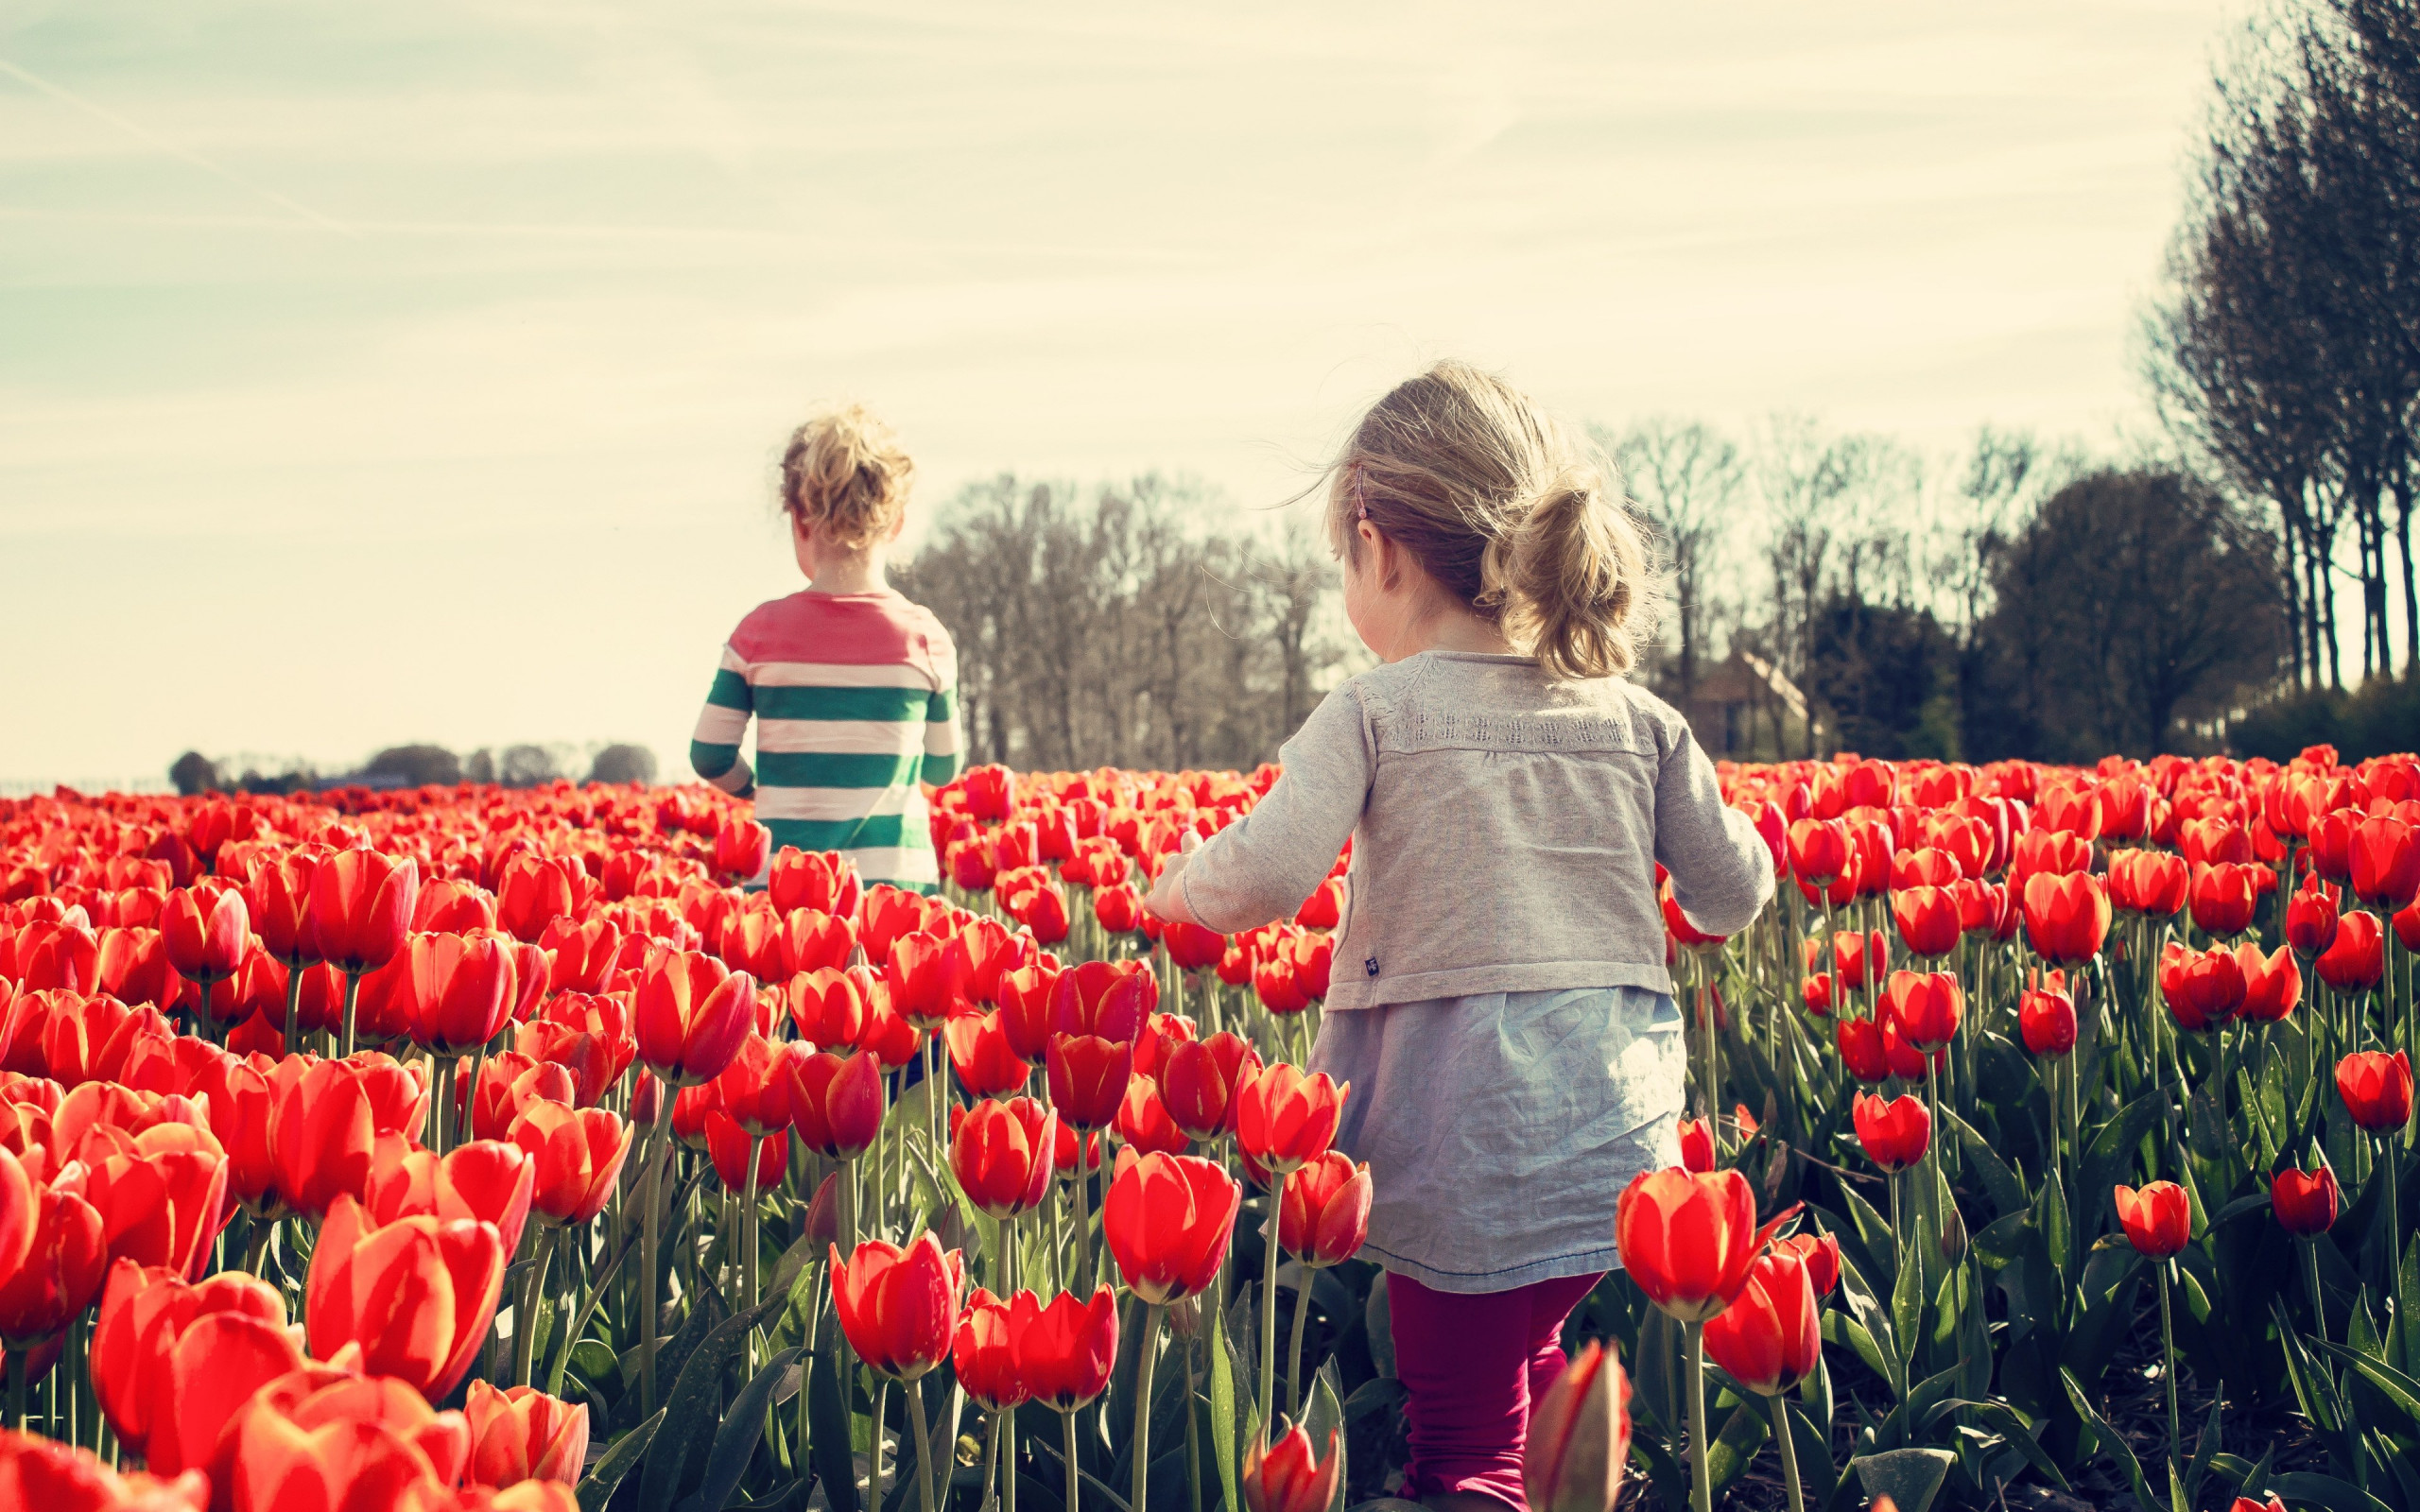 Children in the land with tulips wallpaper 2560x1600